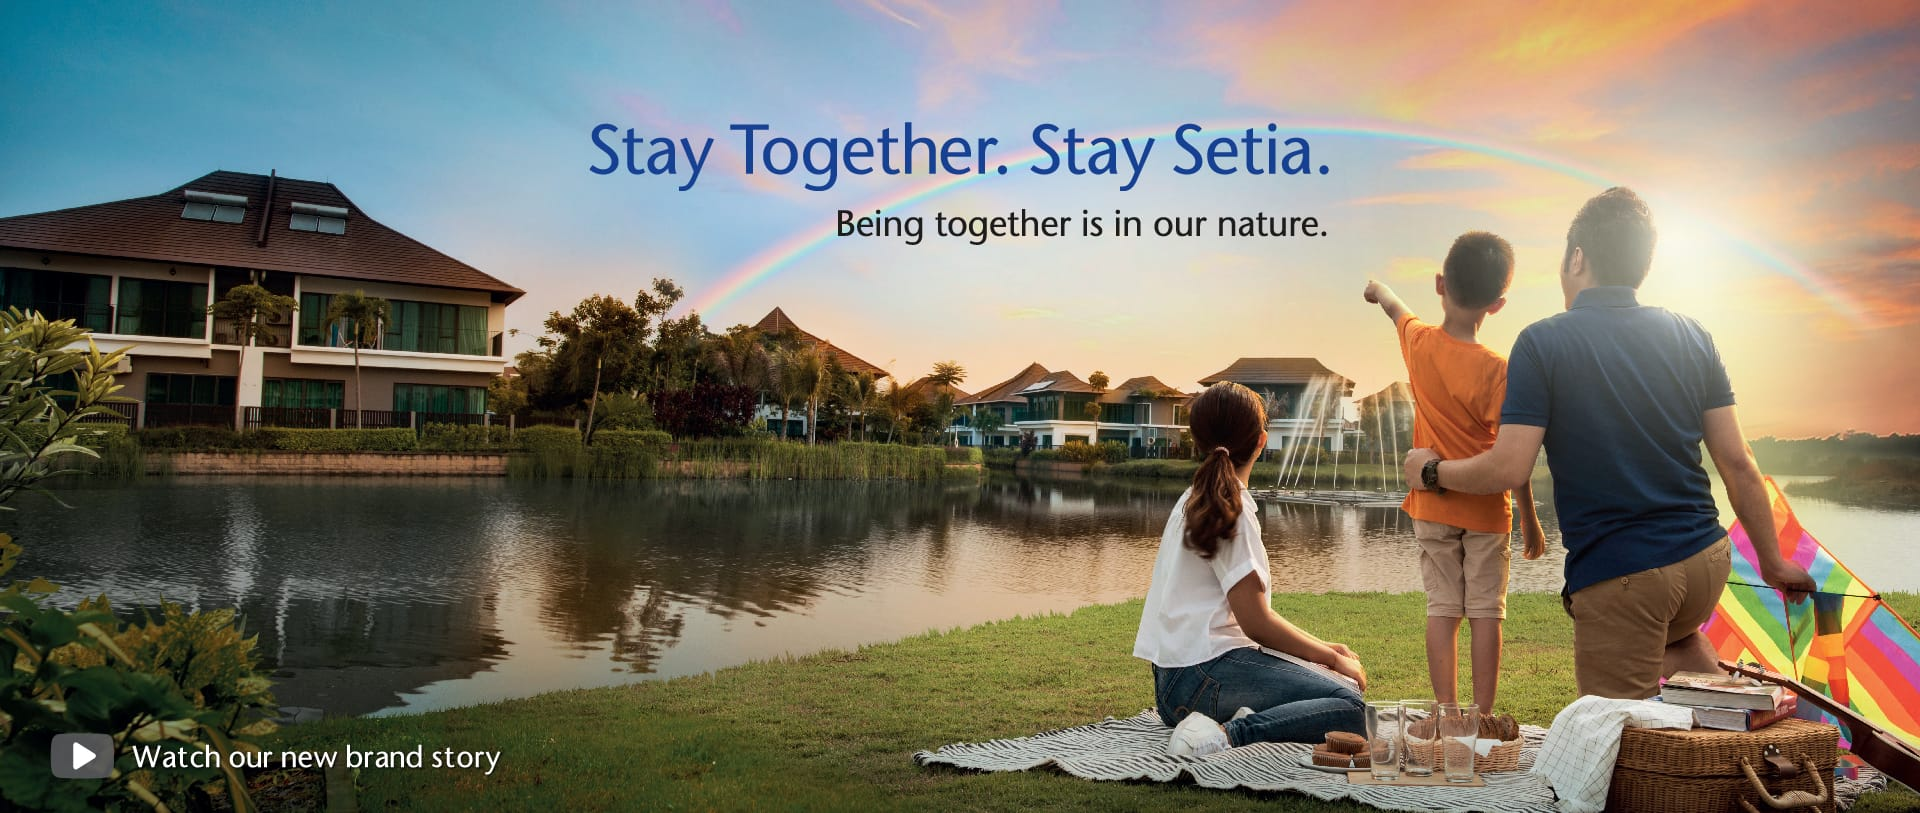 Stay Together Stay Setia